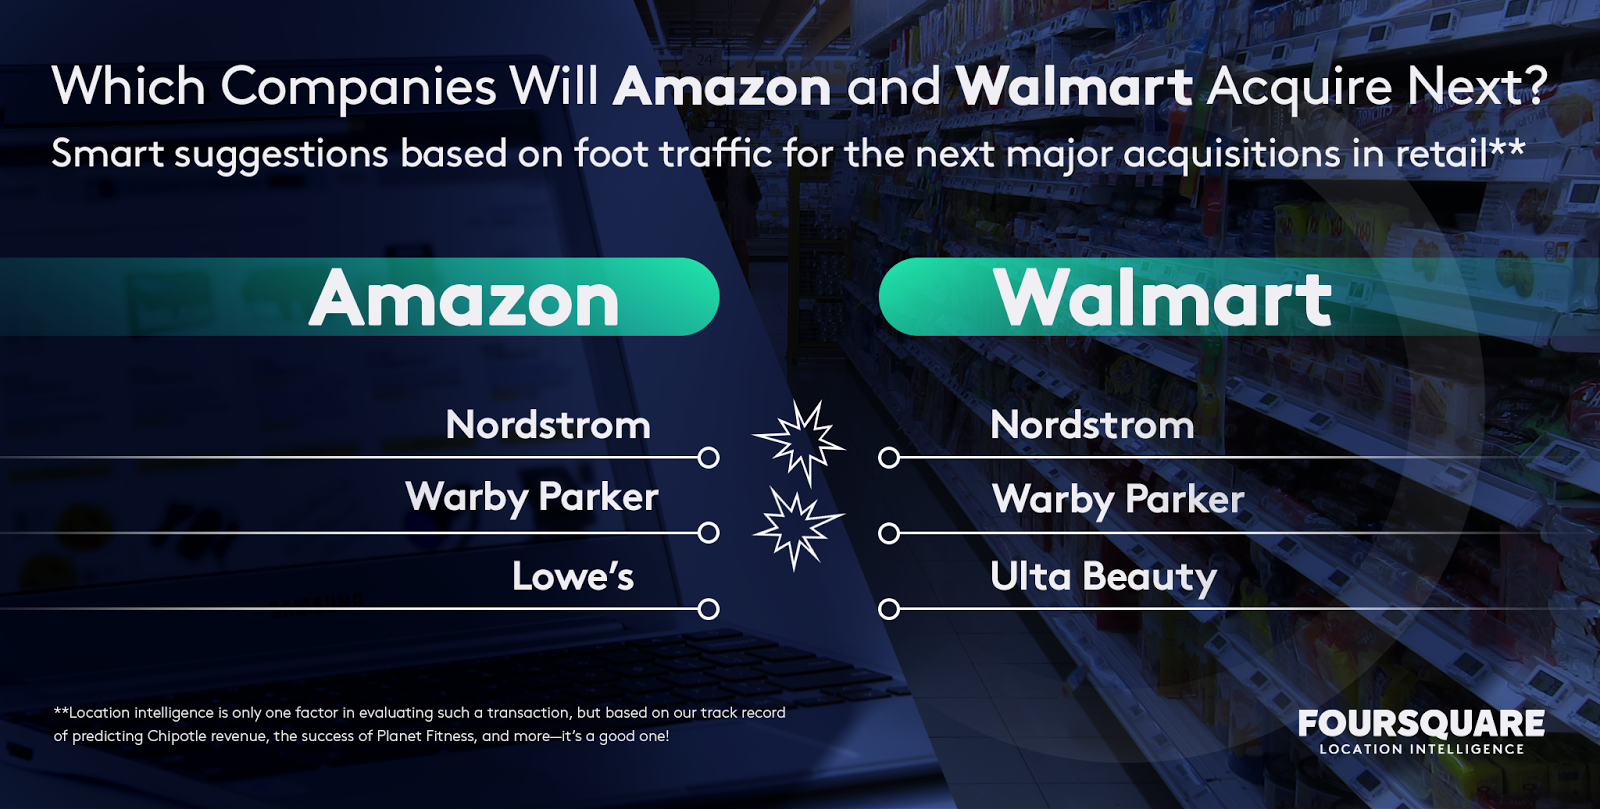 Which Companies Will Amazon and Walmart Acquire Next?